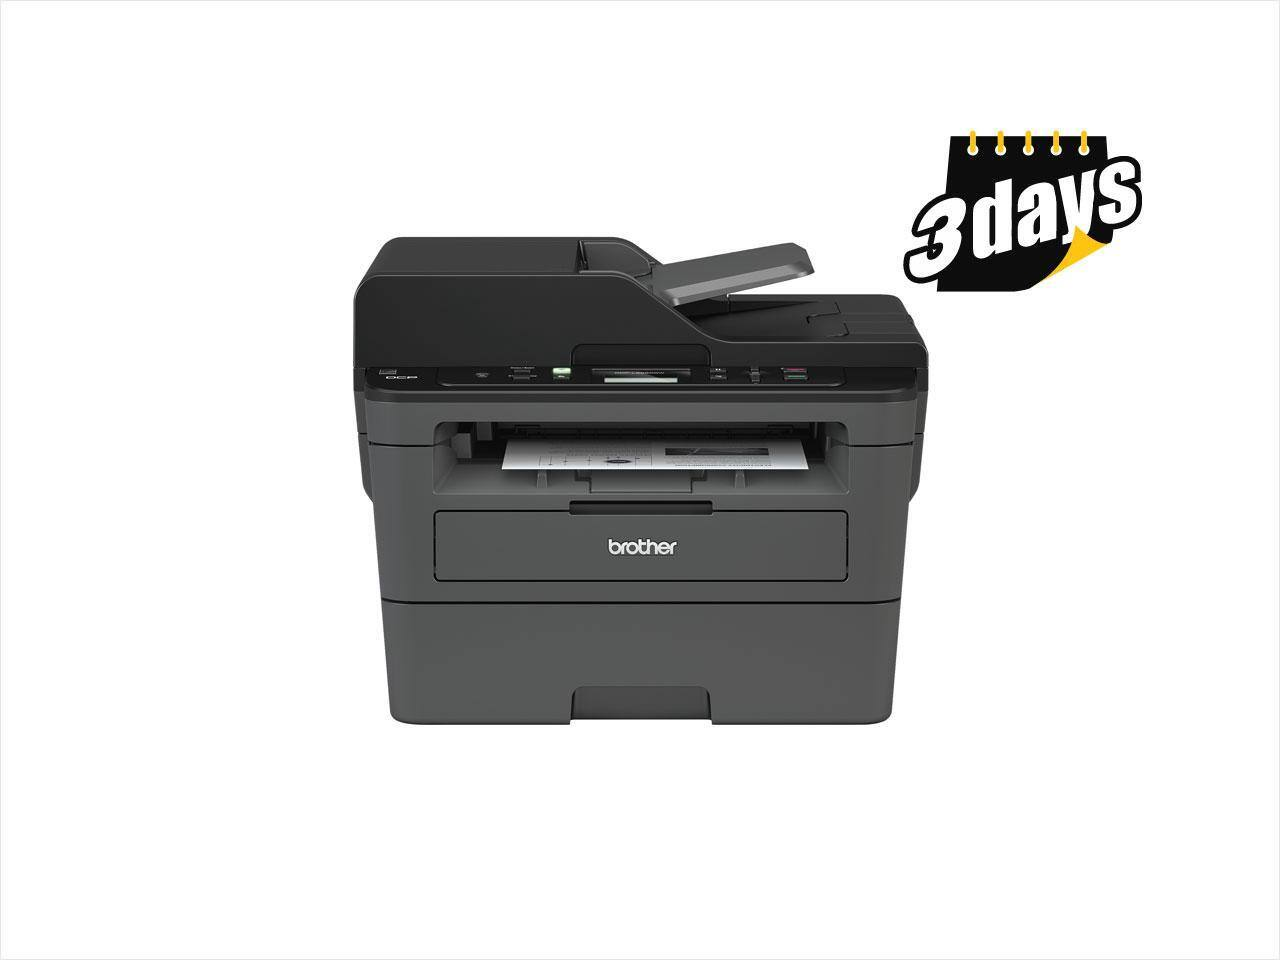 Brother DCP-L2550DW Multi-function Laser Printer $100@NF